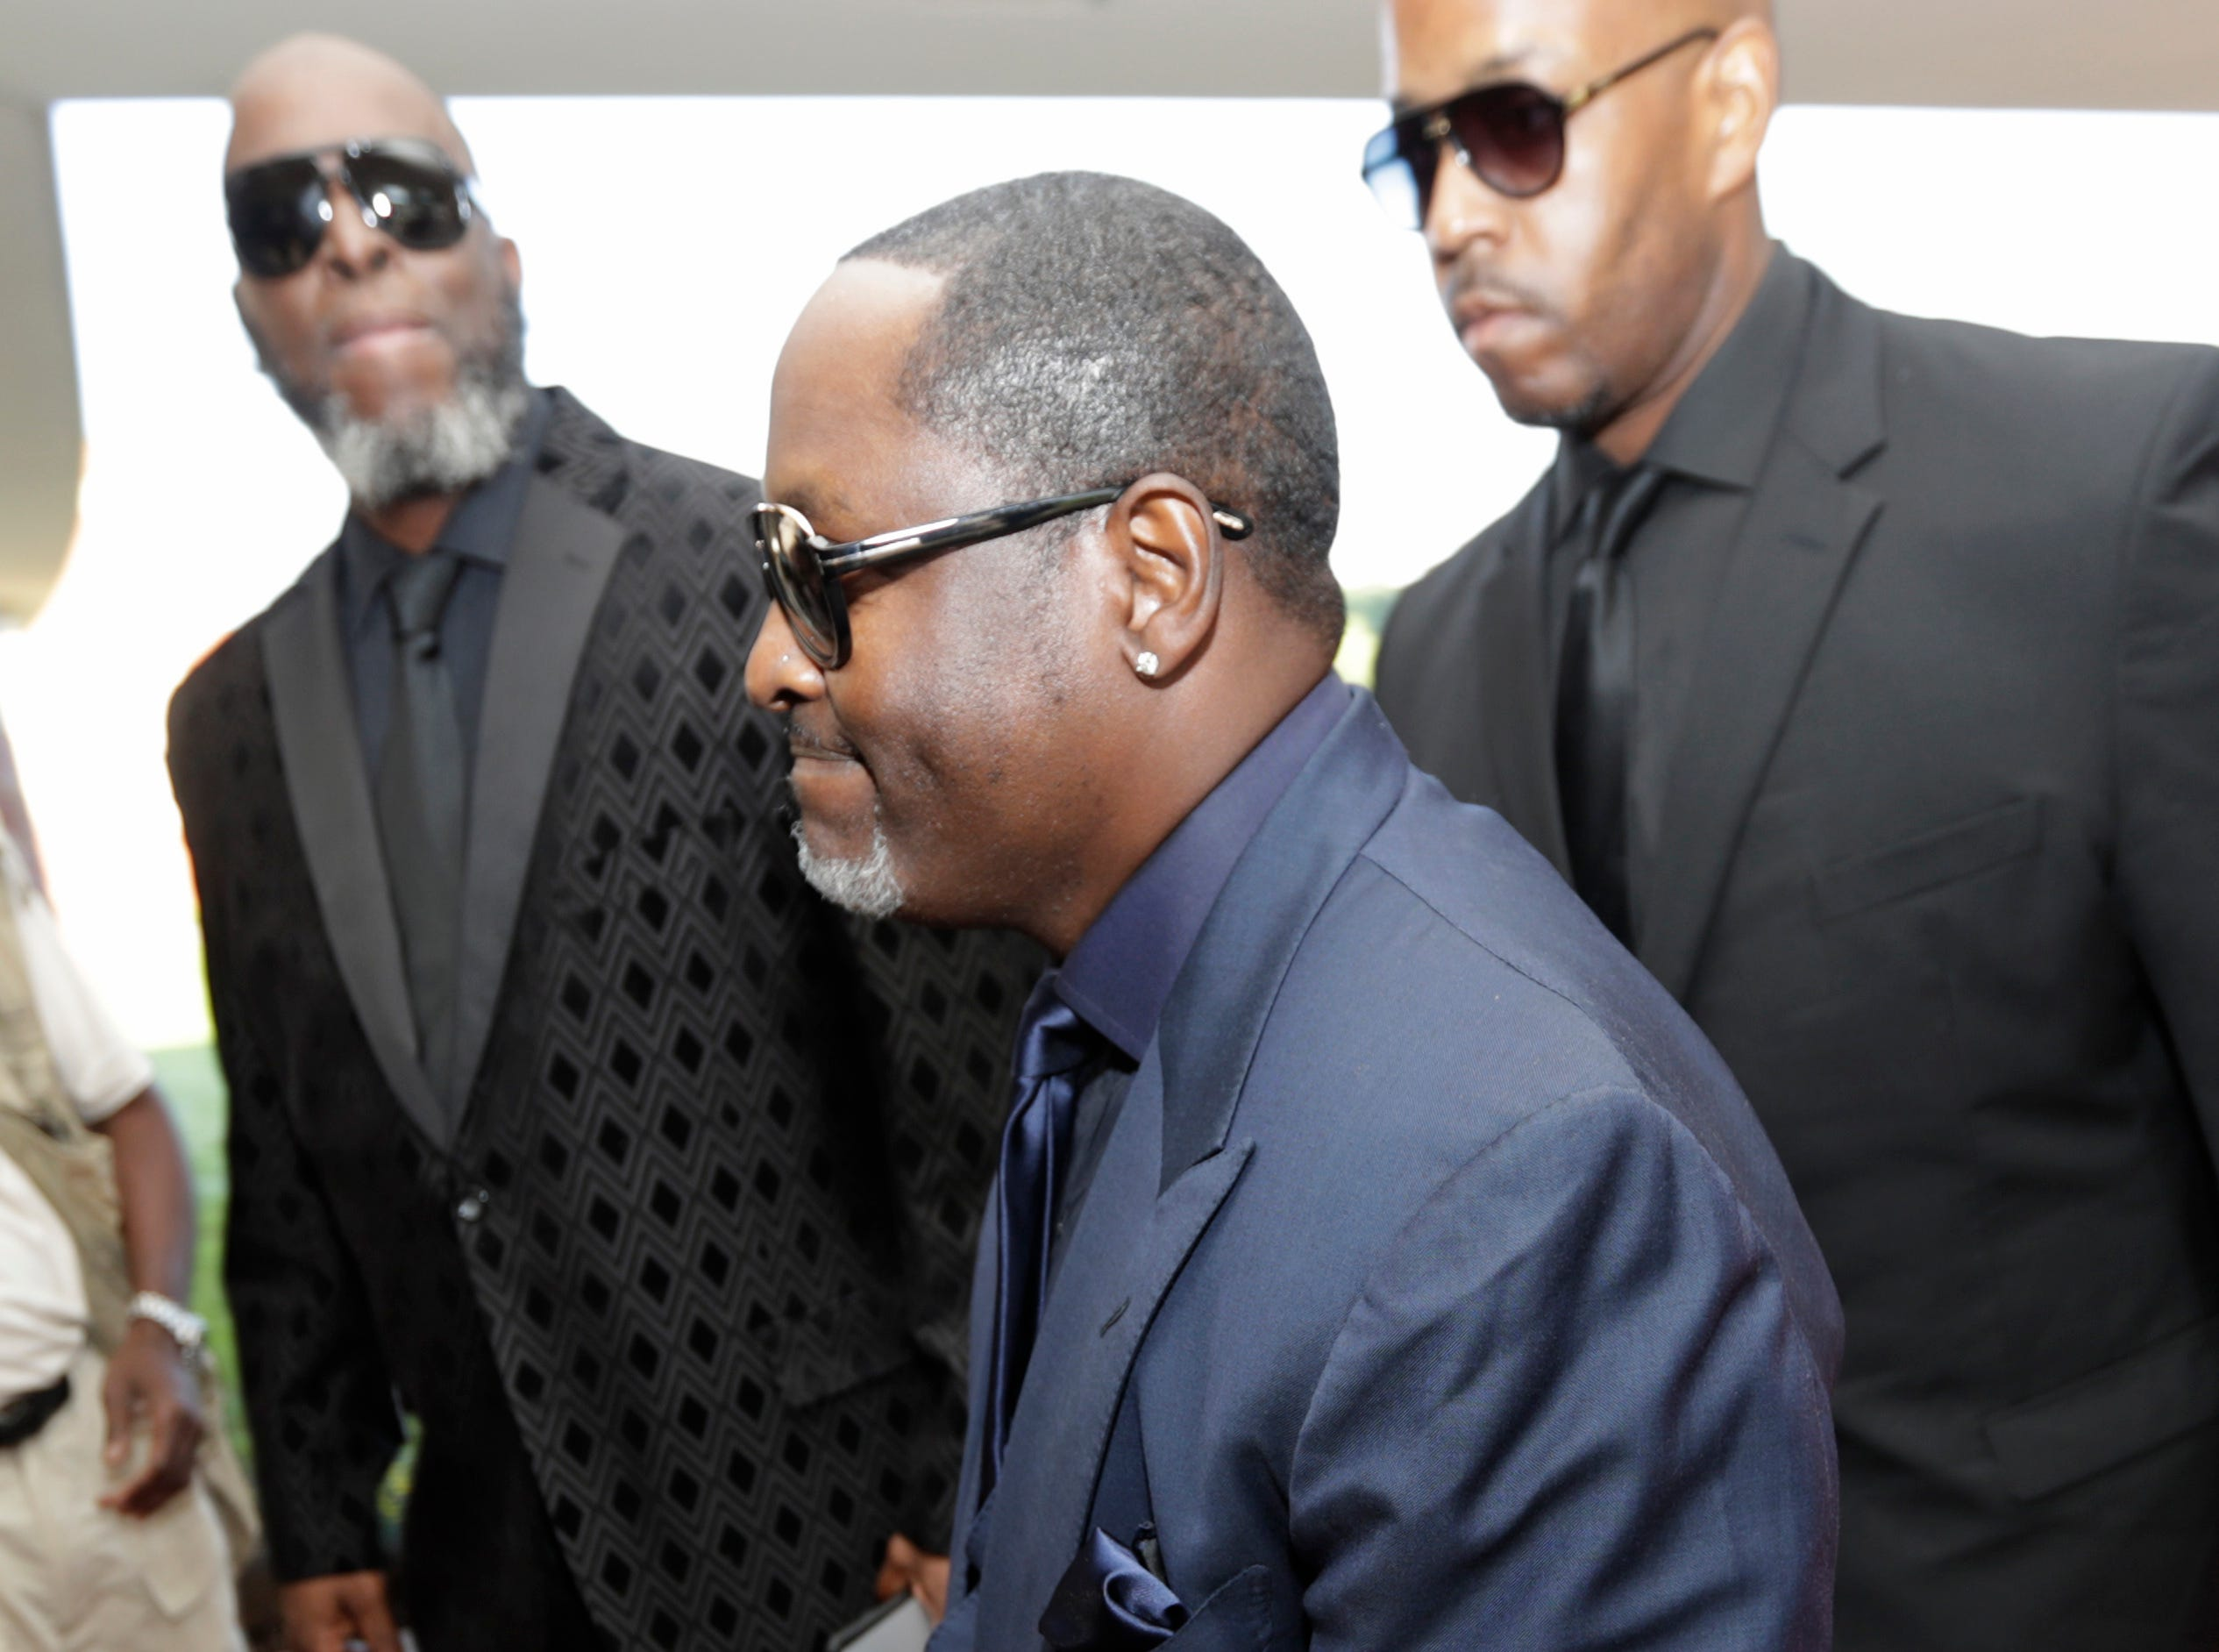 American singer-songwriter Johnny Gill arrives at Greater Grace Temple for legendary singer Aretha Franklin's funeral in Detroit, Friday, Aug. 31, 2018. Franklin died Aug. 16 of pancreatic cancer at the age of 76. (AP Photo/Tony Dejak) ORG XMIT: MITD112